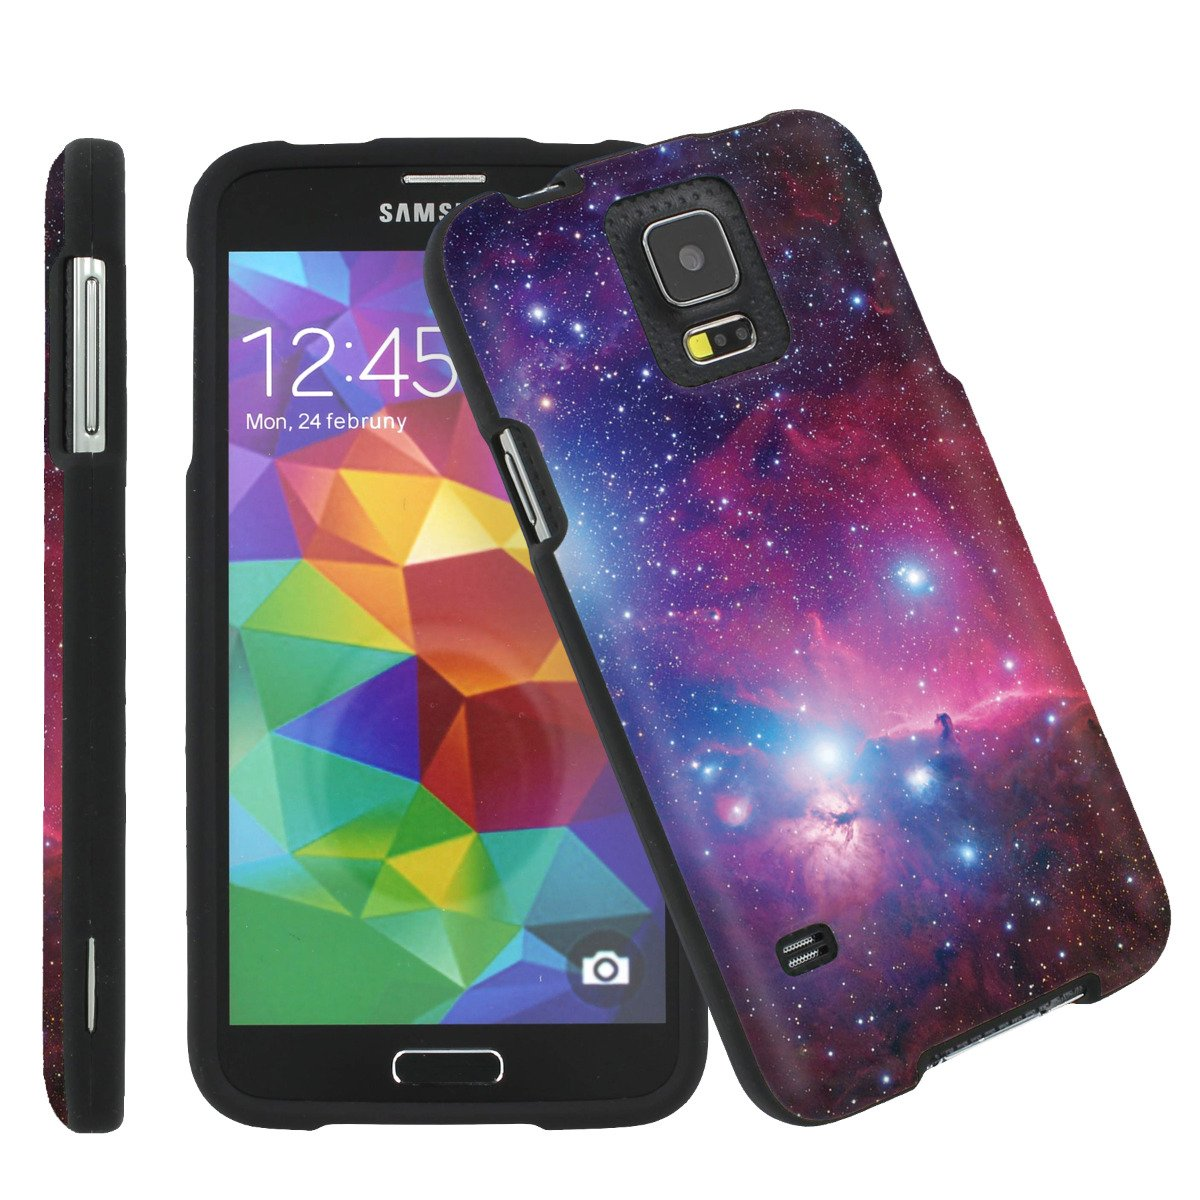 Samsung Galaxy S5 Total Protection Black Phone Cover Hard Case (Space)